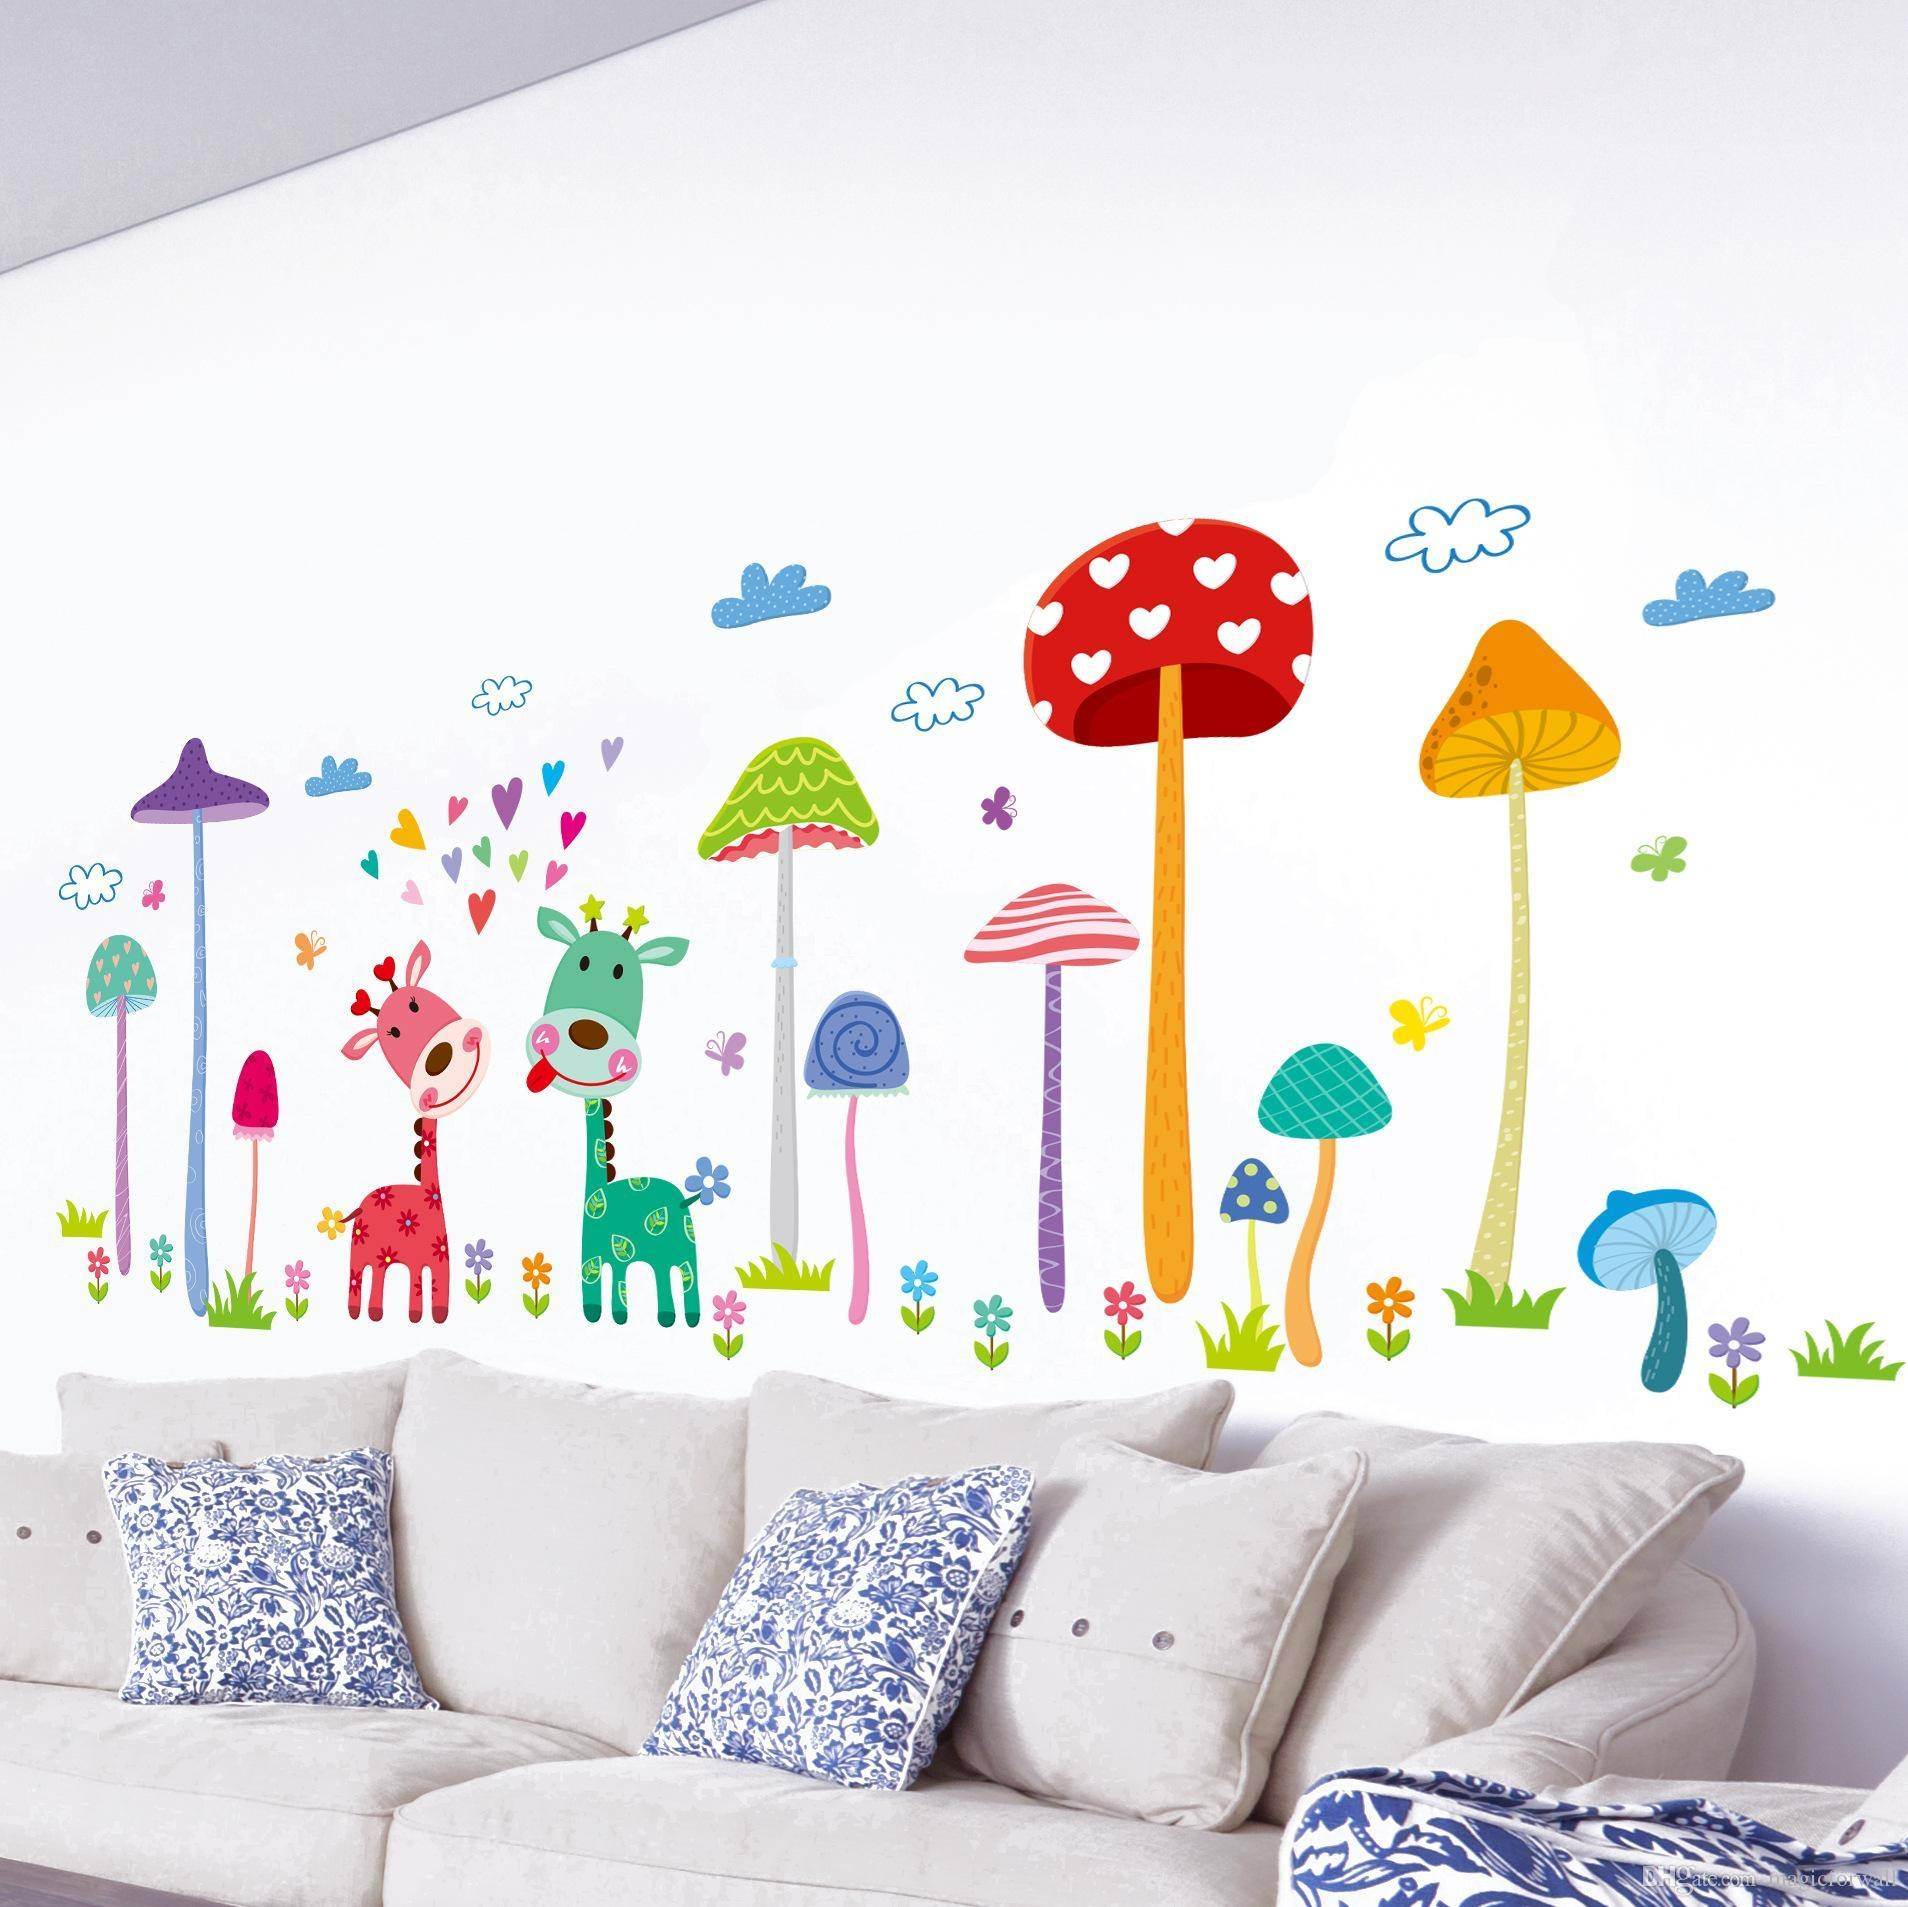 Forest Mushroom Deer Animals Home Wall Art Mural Decor Kids Babies Within Most Recently Released Animal Wall Art Stickers (Gallery 14 of 20)